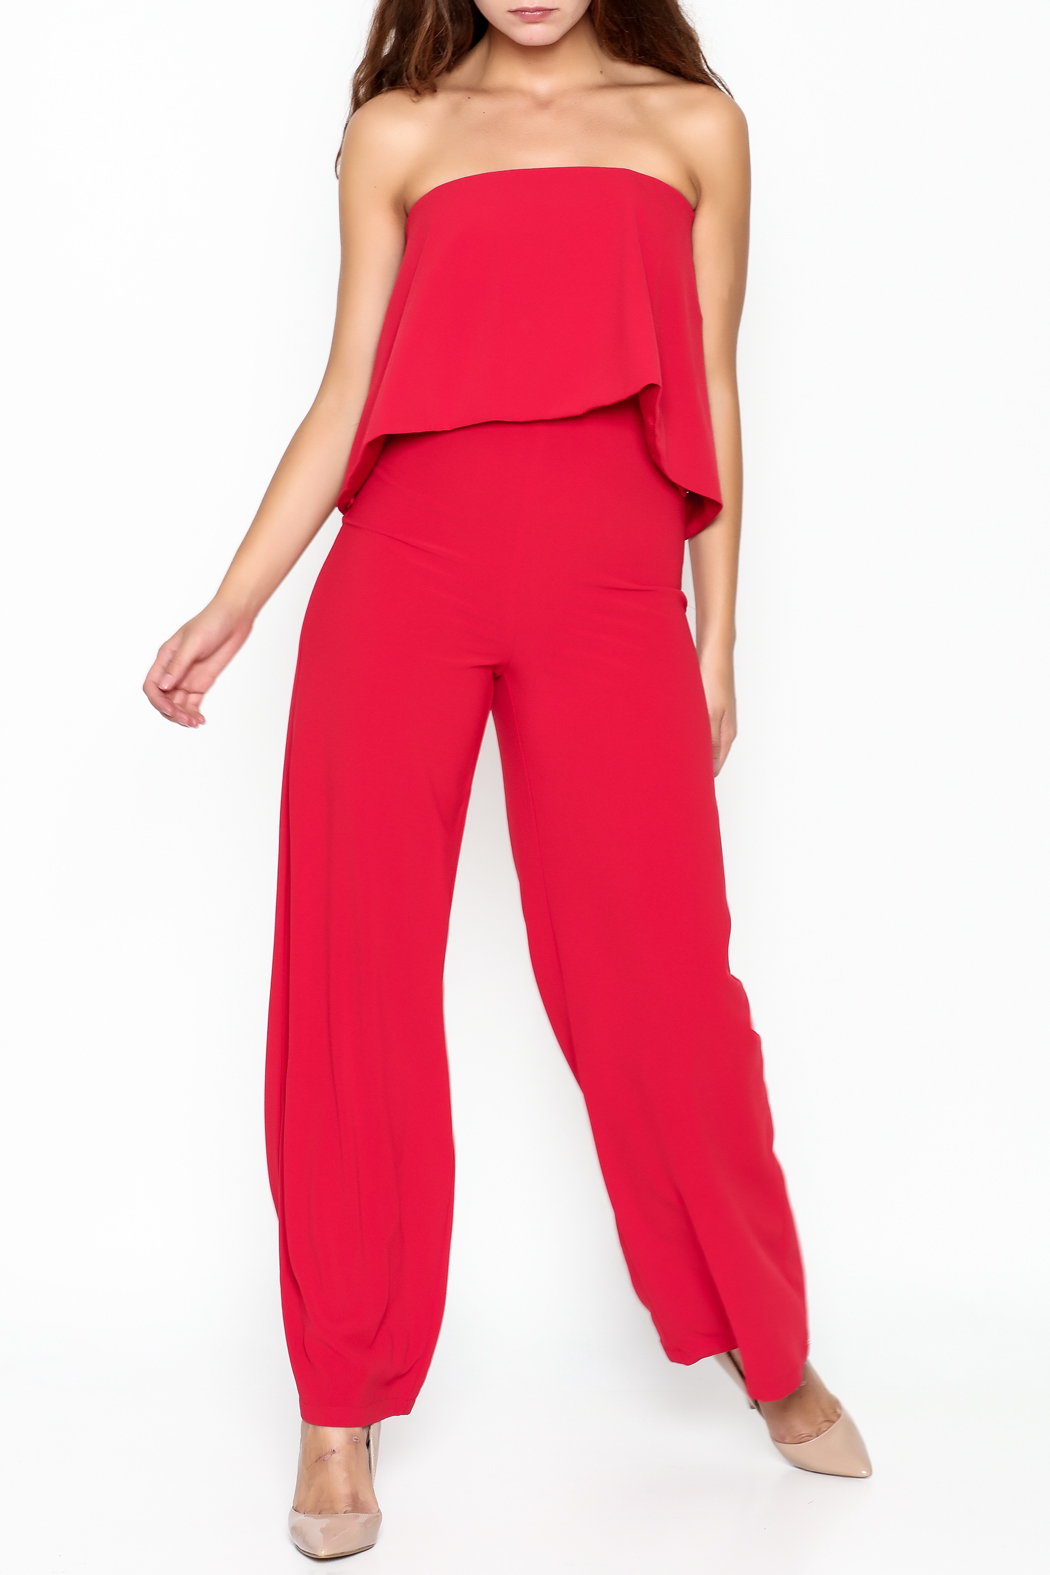 Do-Be Ruffle Strapless Jumpsuit - Main Image